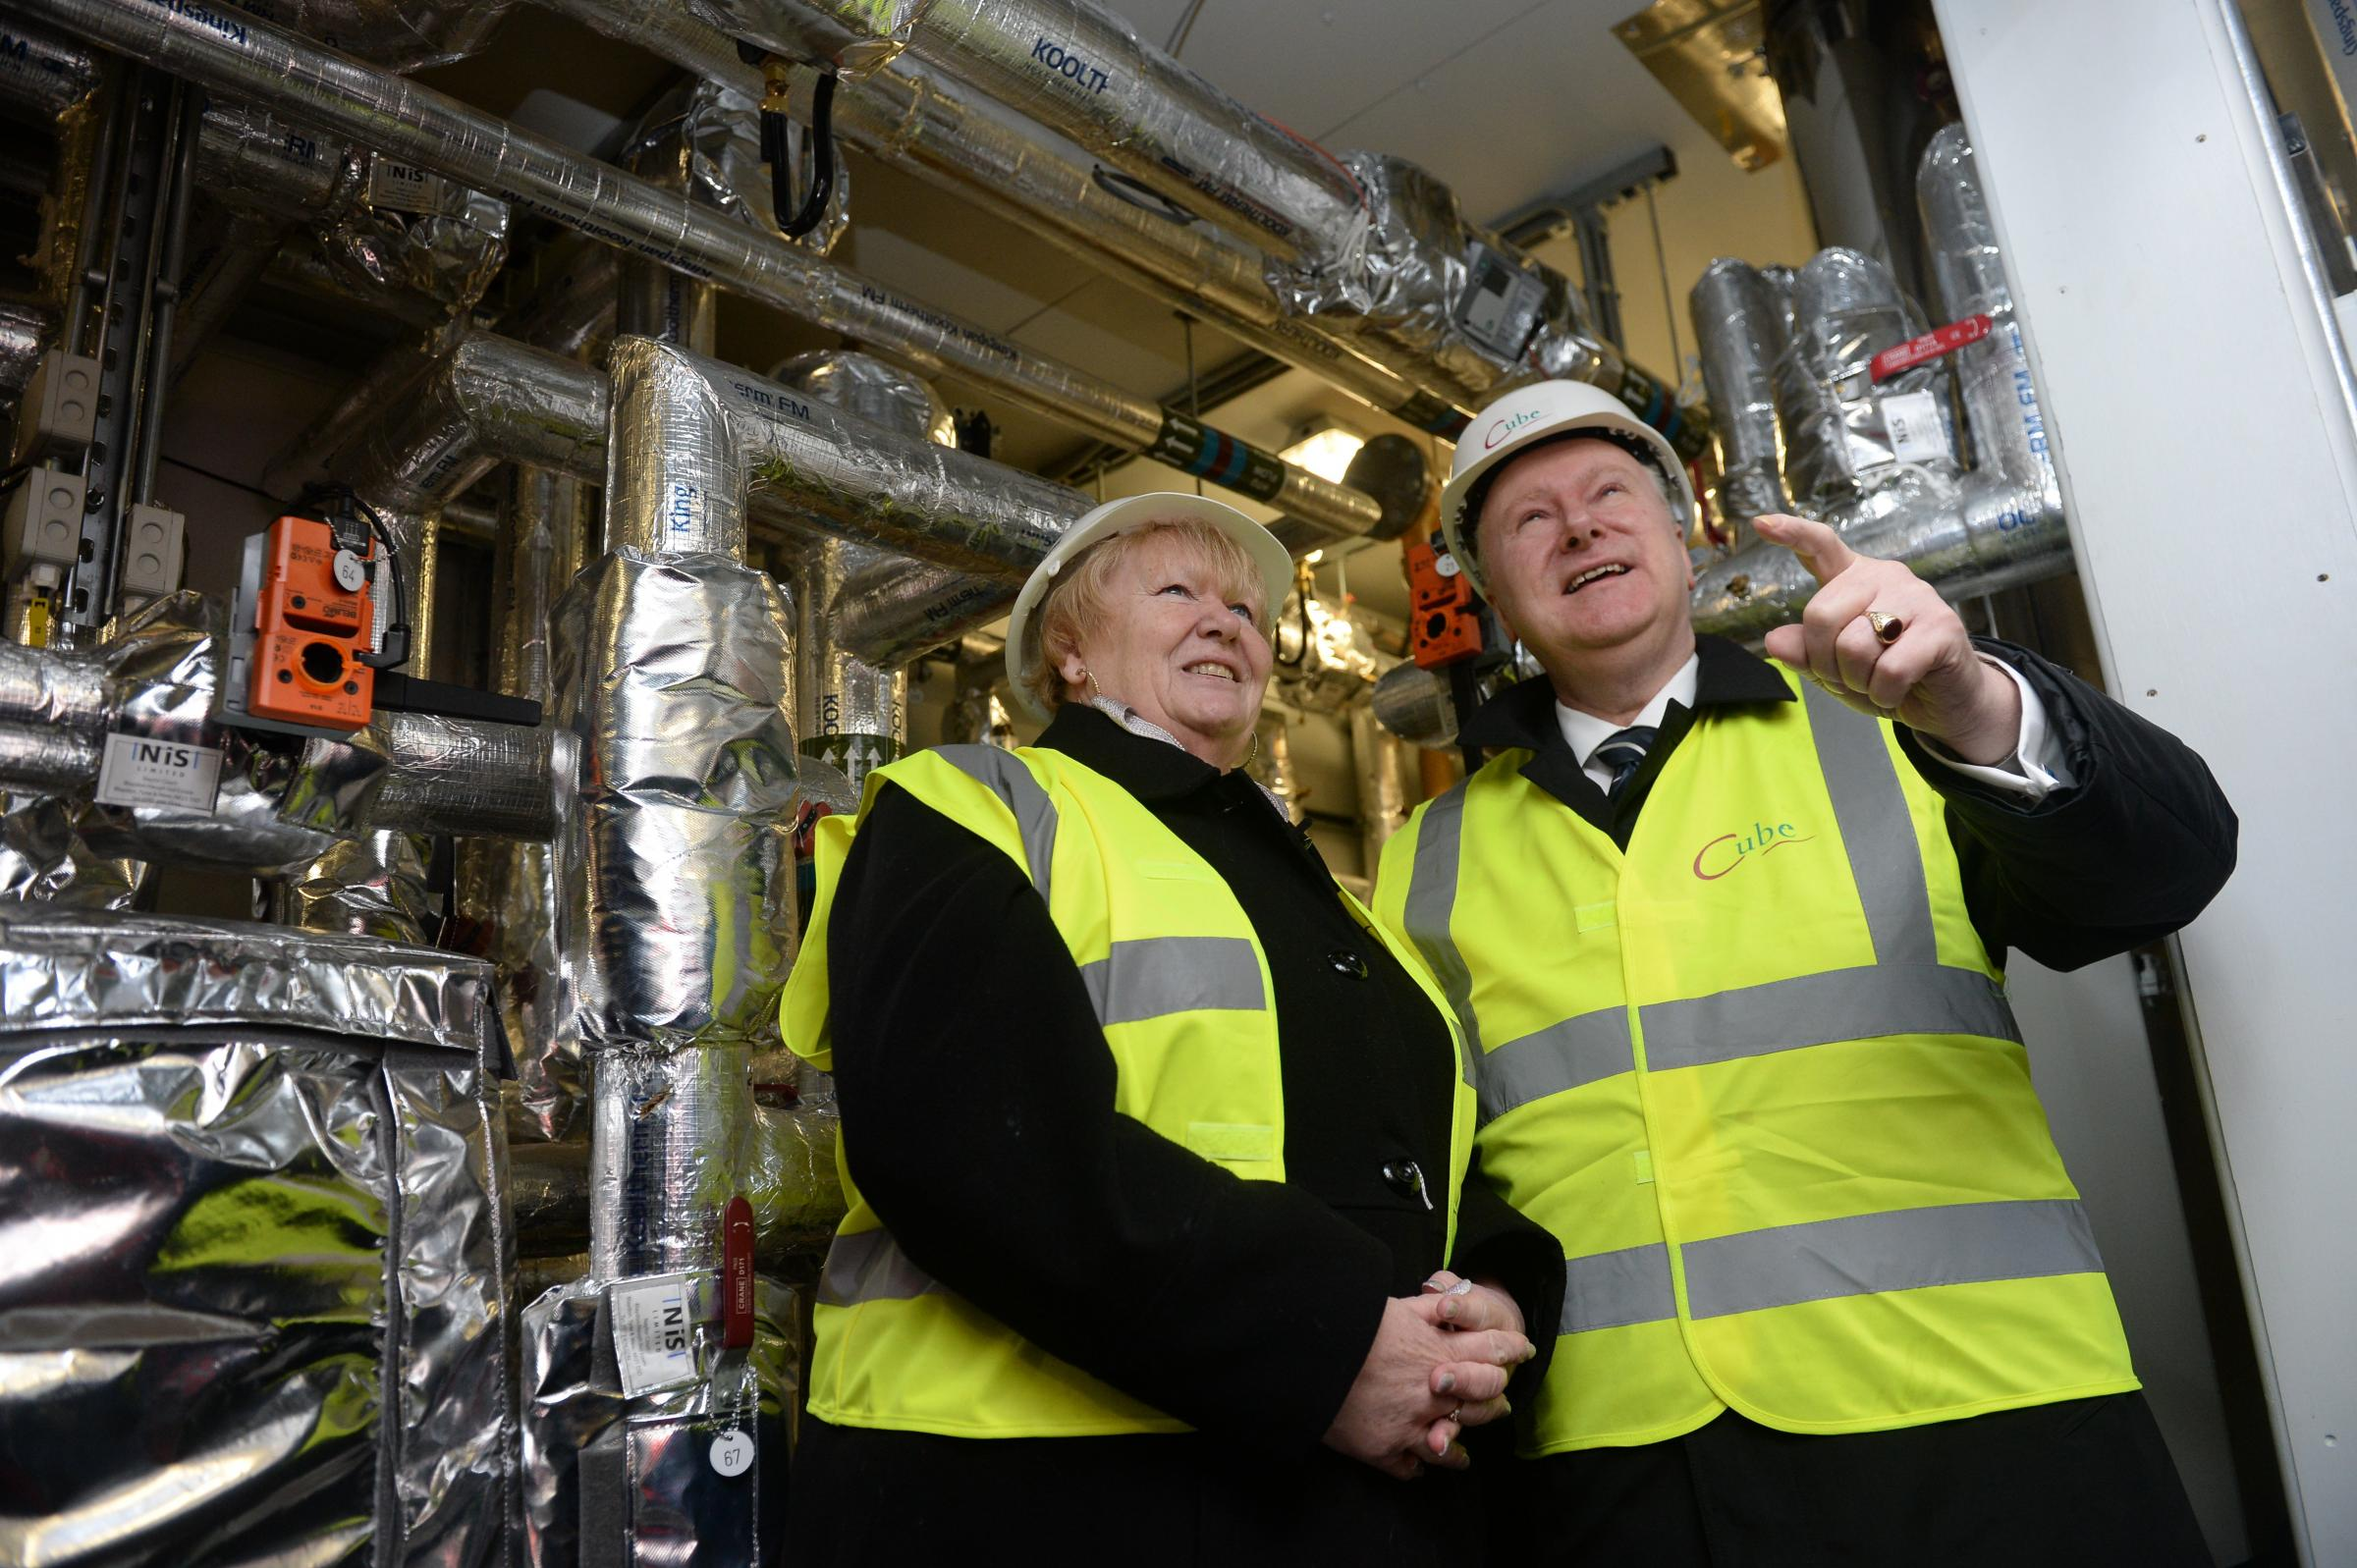 Former SNP minister Alex Neil unveiled a £10.6 district heating scheme, designed to help elp reduce the heating bills of more than 700 households in Glasgow, in January